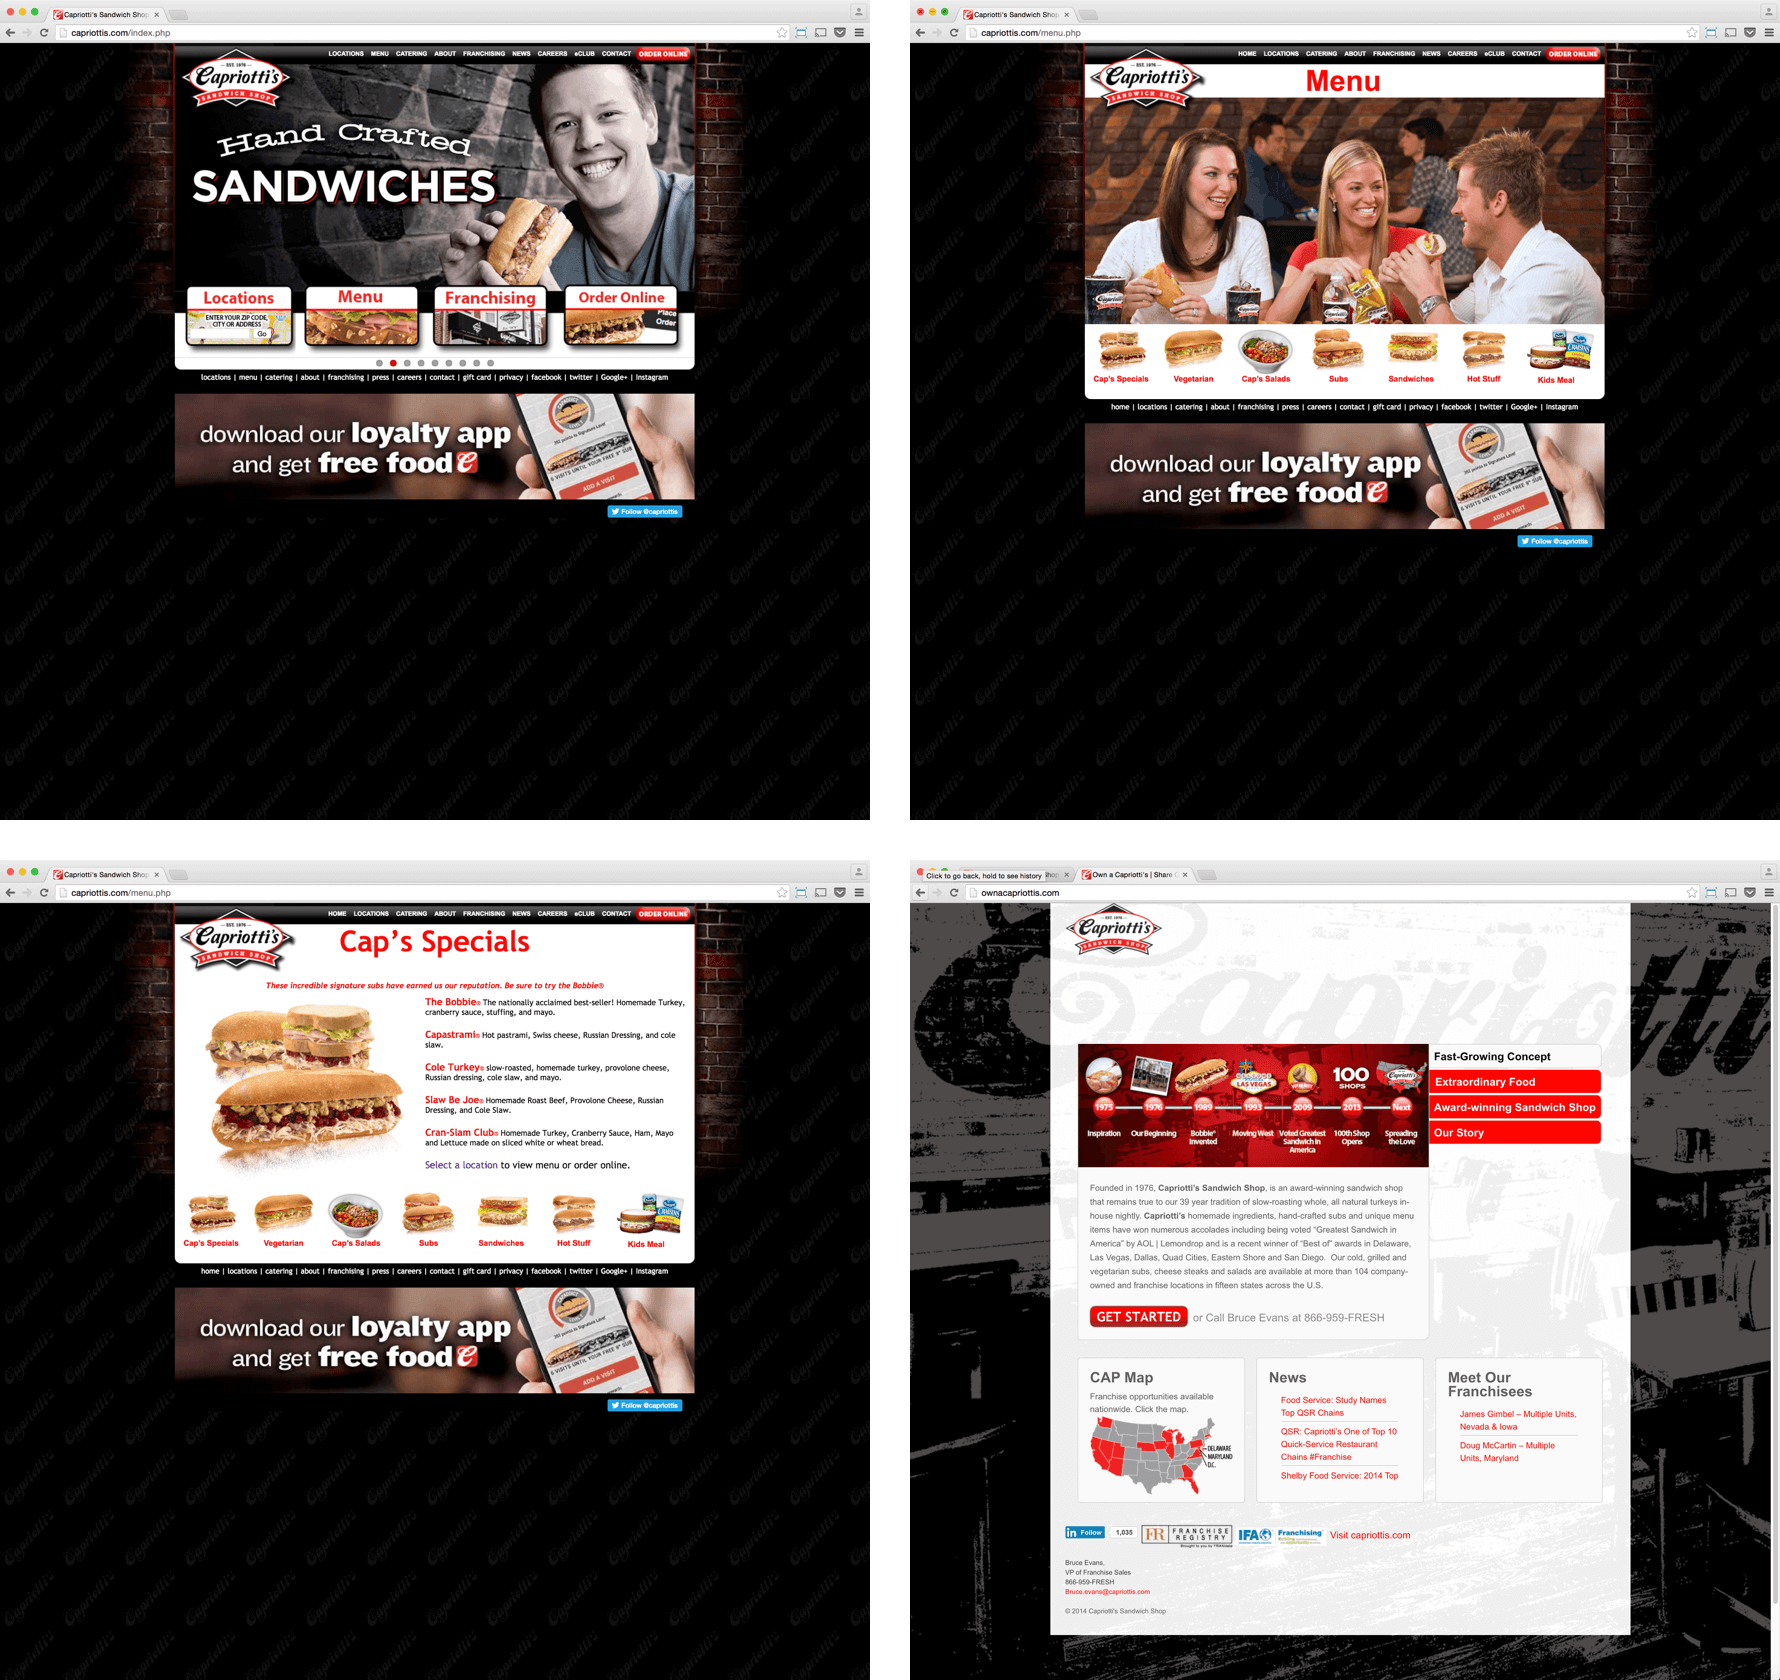 Screenshots of the old Capriotti's websites.